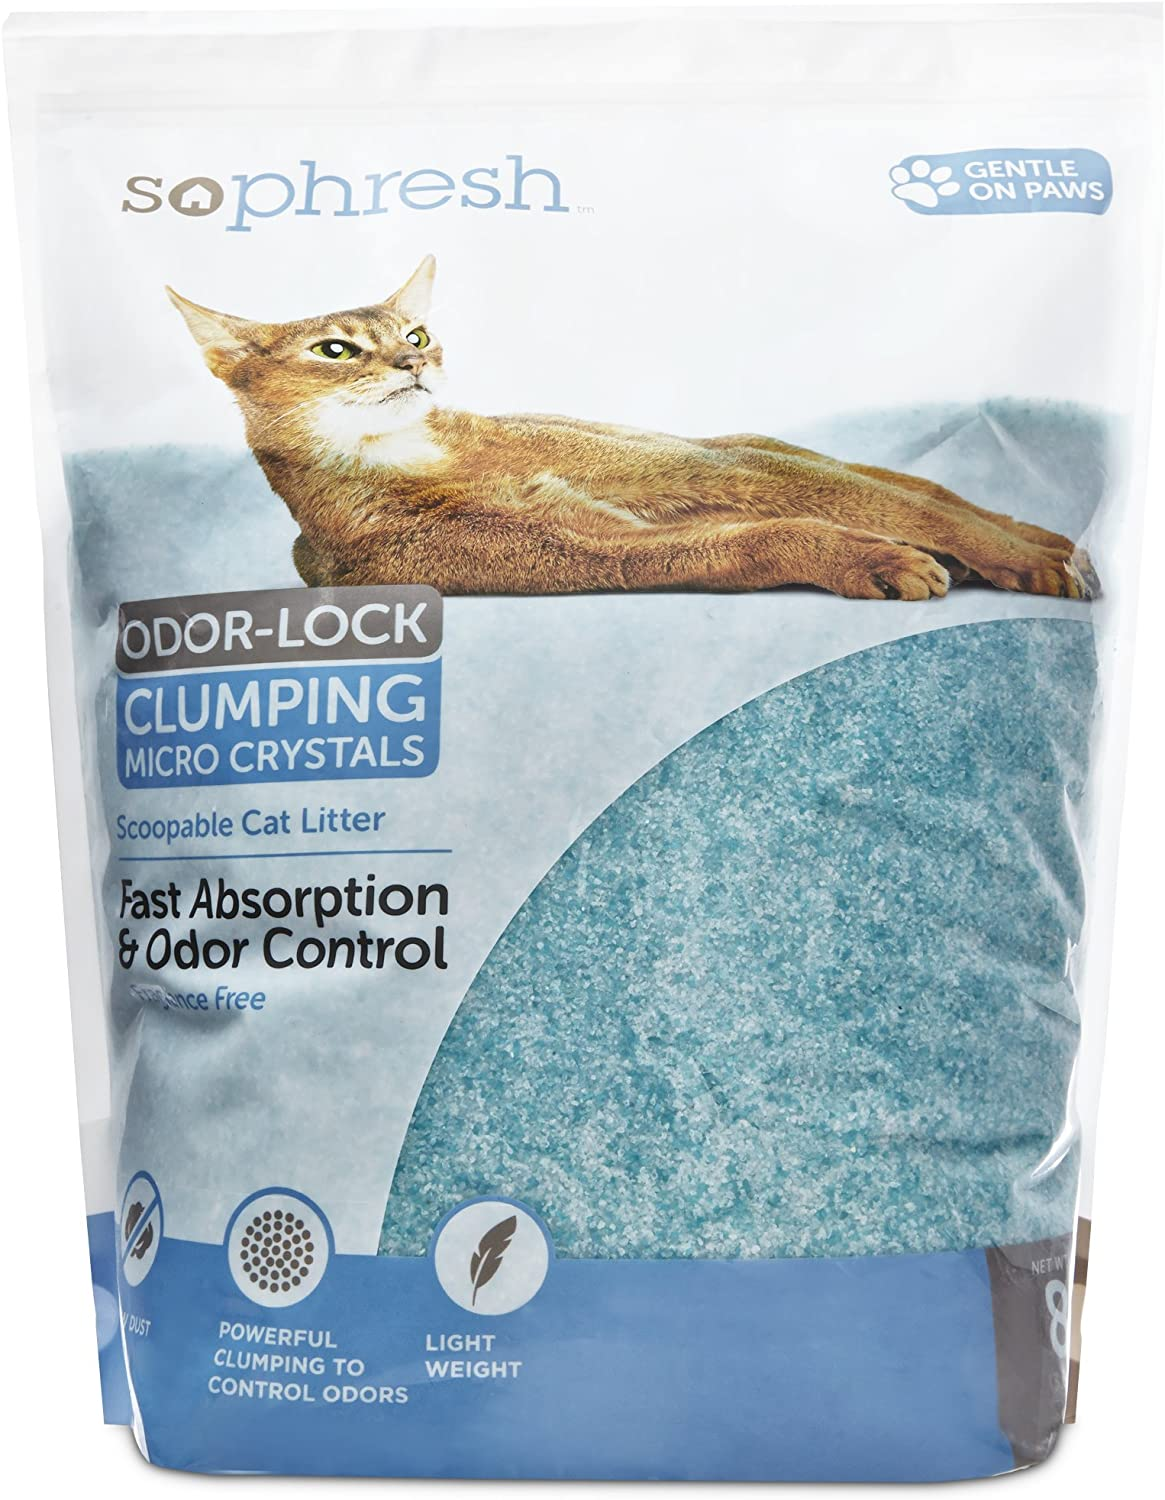 SO PHRESH Scoopable Odor-Lock Clumping Micro Crystal Cat Litter in Turquoise Silica